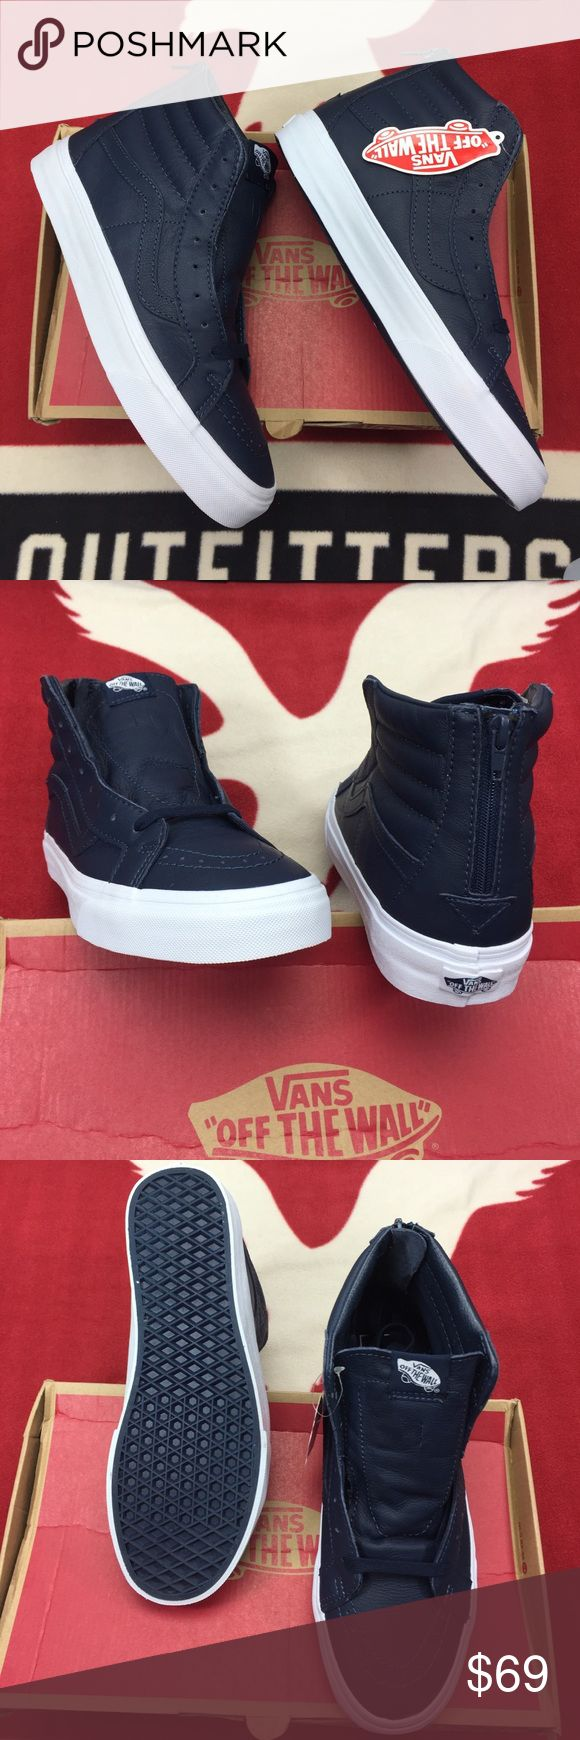 Vans Sk8-Hi Reissue Zip Premium Leather Dress Blue Vans Sk8-Hi Zip. the legendary lace-up high top, features sturdy uppers, re-enforced toecaps to withstand repeated wear, padded collars for support and flexibility, and signature rubber waffle outsole Vans Shoes Sneakers